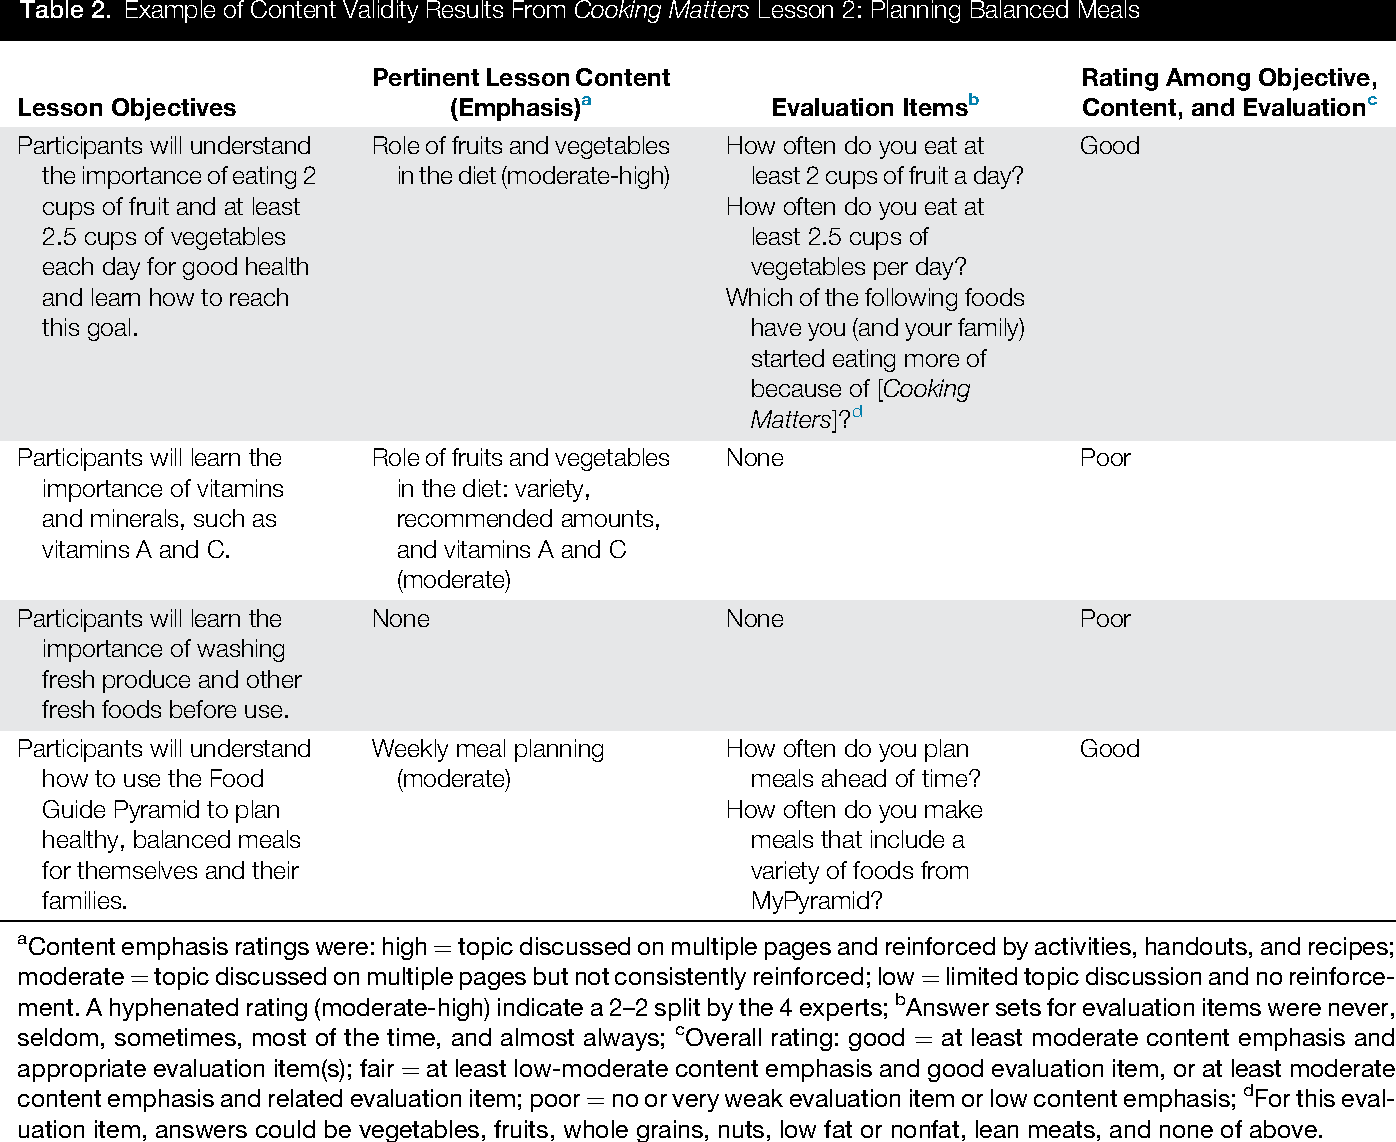 Table 2 From Confirming The Reliability And Validity Of Others